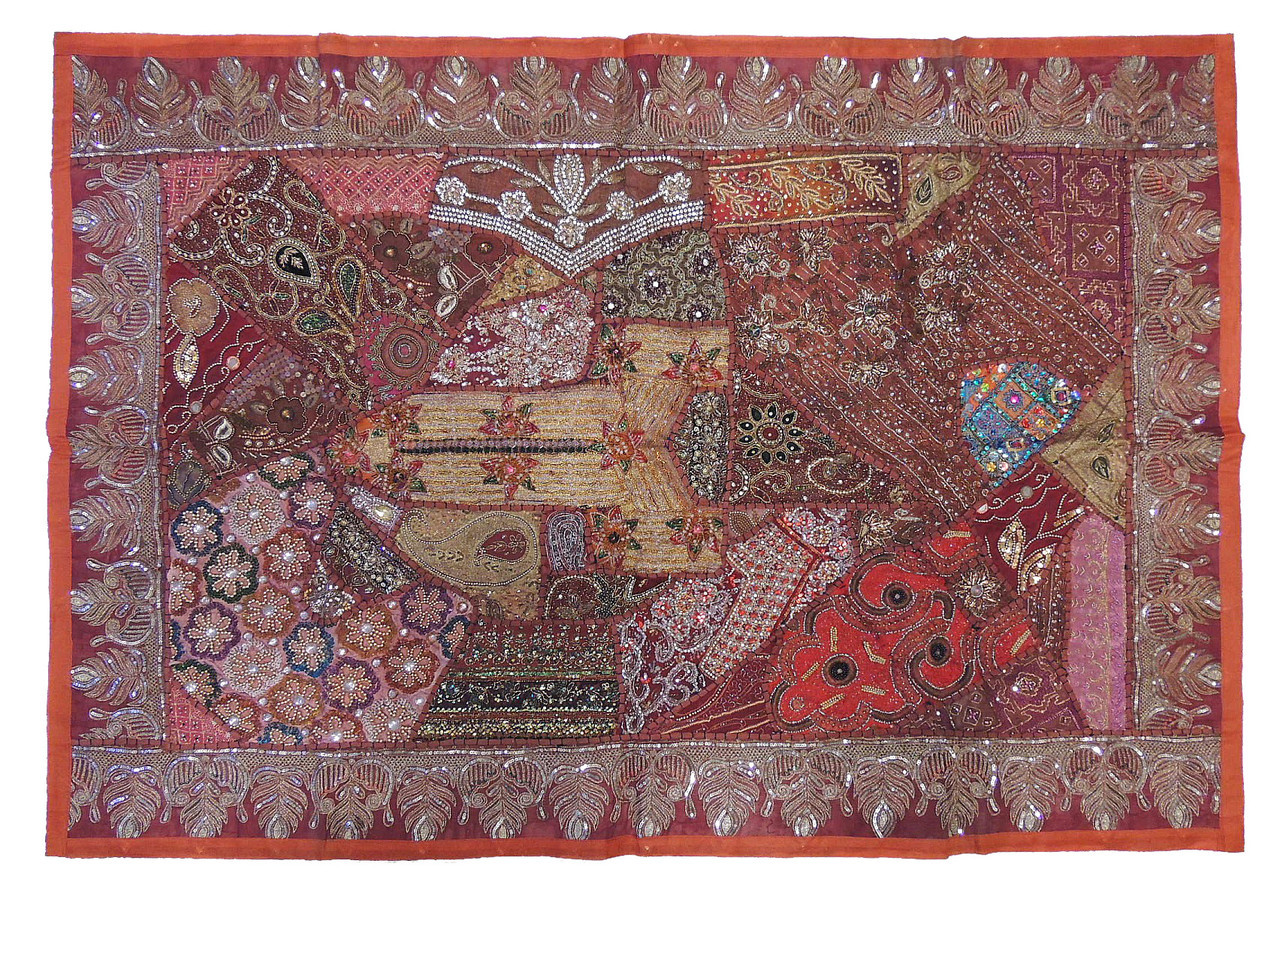 Fabric Wall Hanging brown sari fabric wall hanging tapestry - large indian inspired